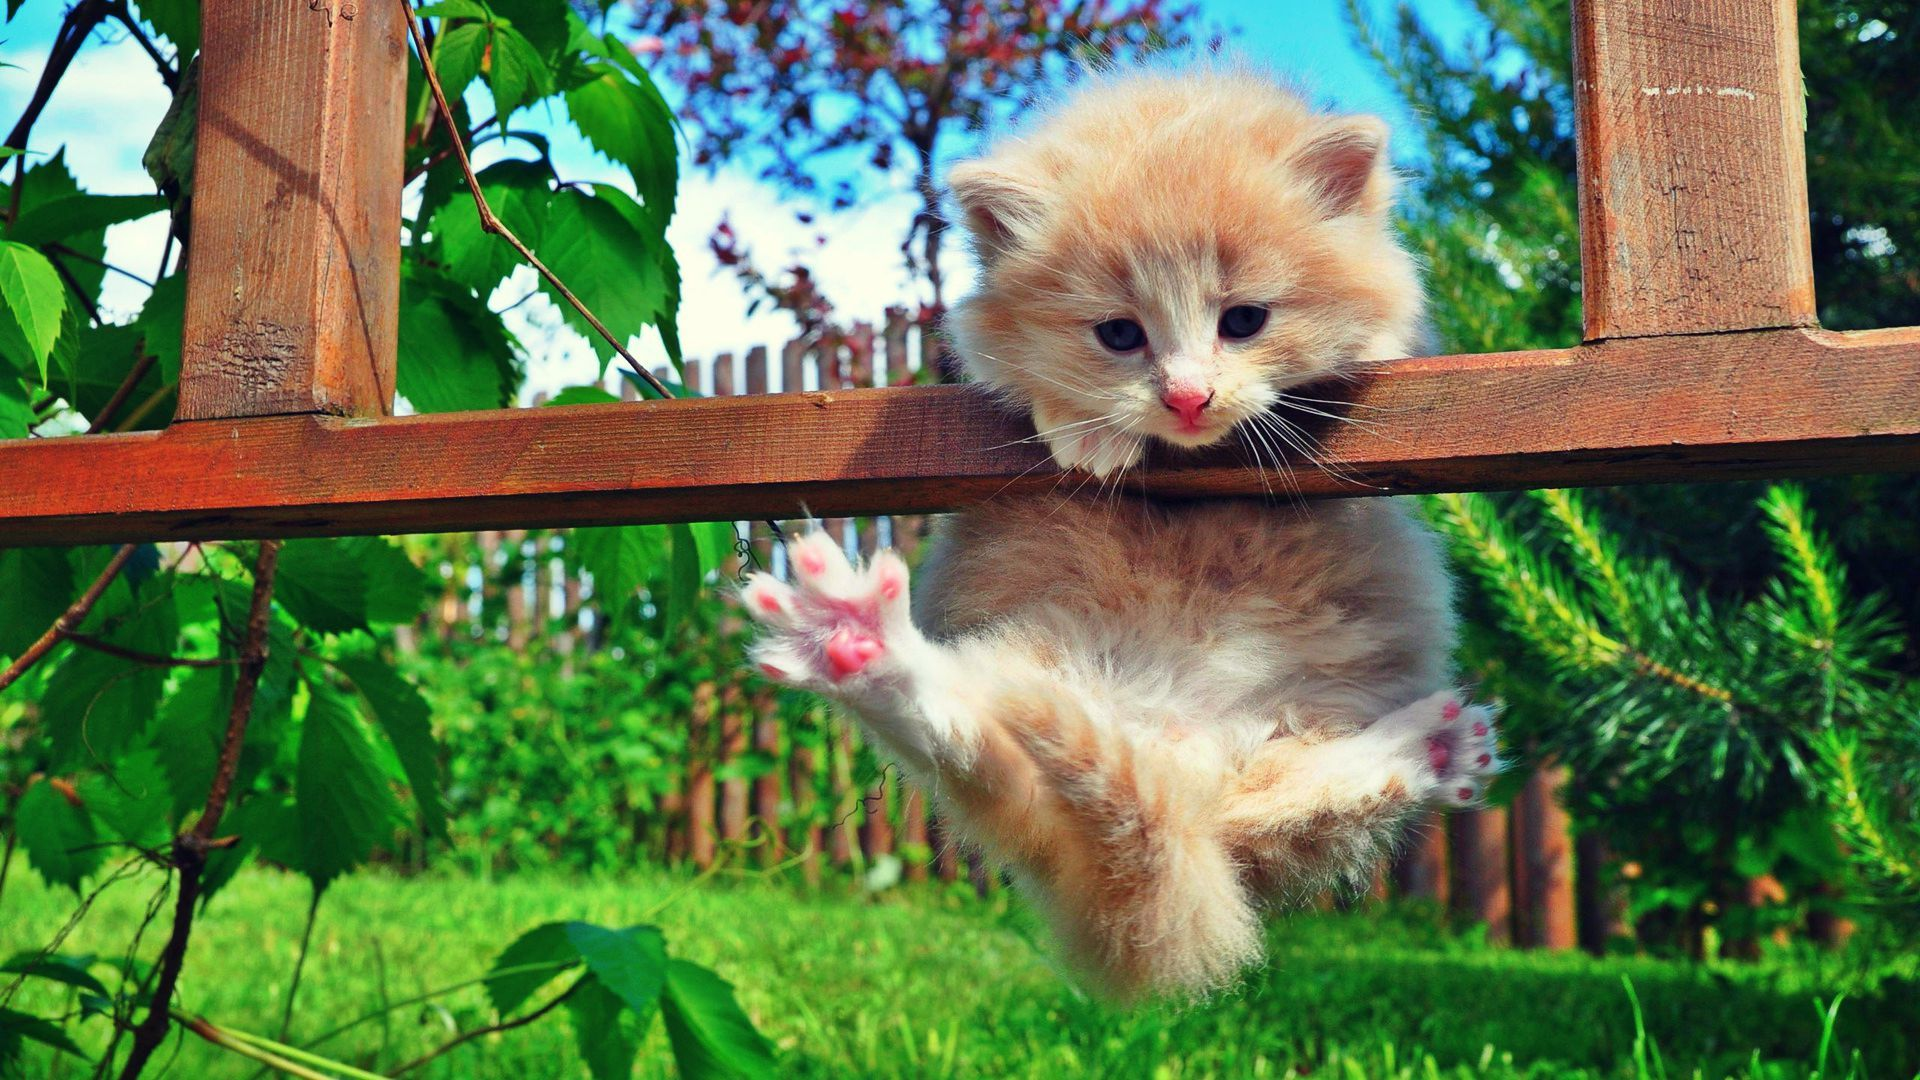 Cat hanging on fence. Funny kitten pic. Kittens cutest